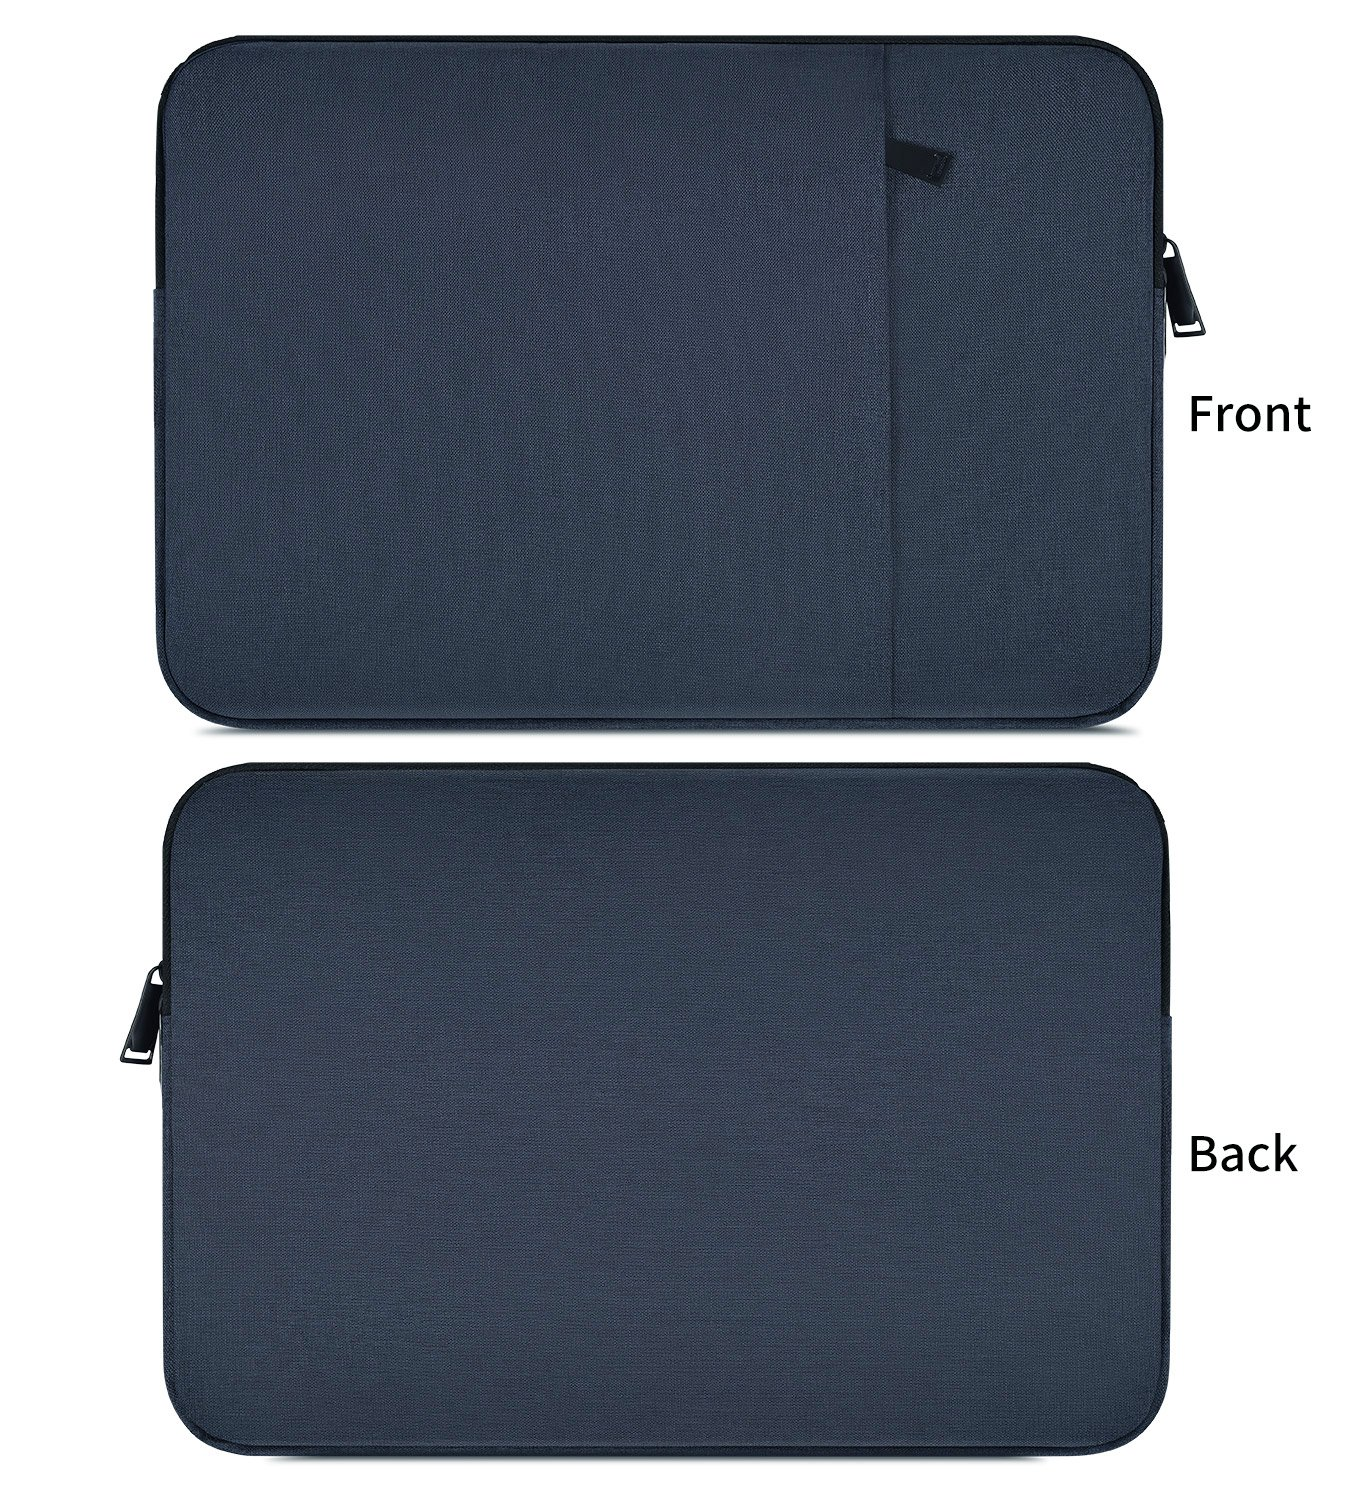 14-15 Inch Waterpoof Laptop Sleeve for Dell XPS 15 9570 9575, Lenovo Flex 4, HP Stream 14 Inch, HP Pavilion X360 14